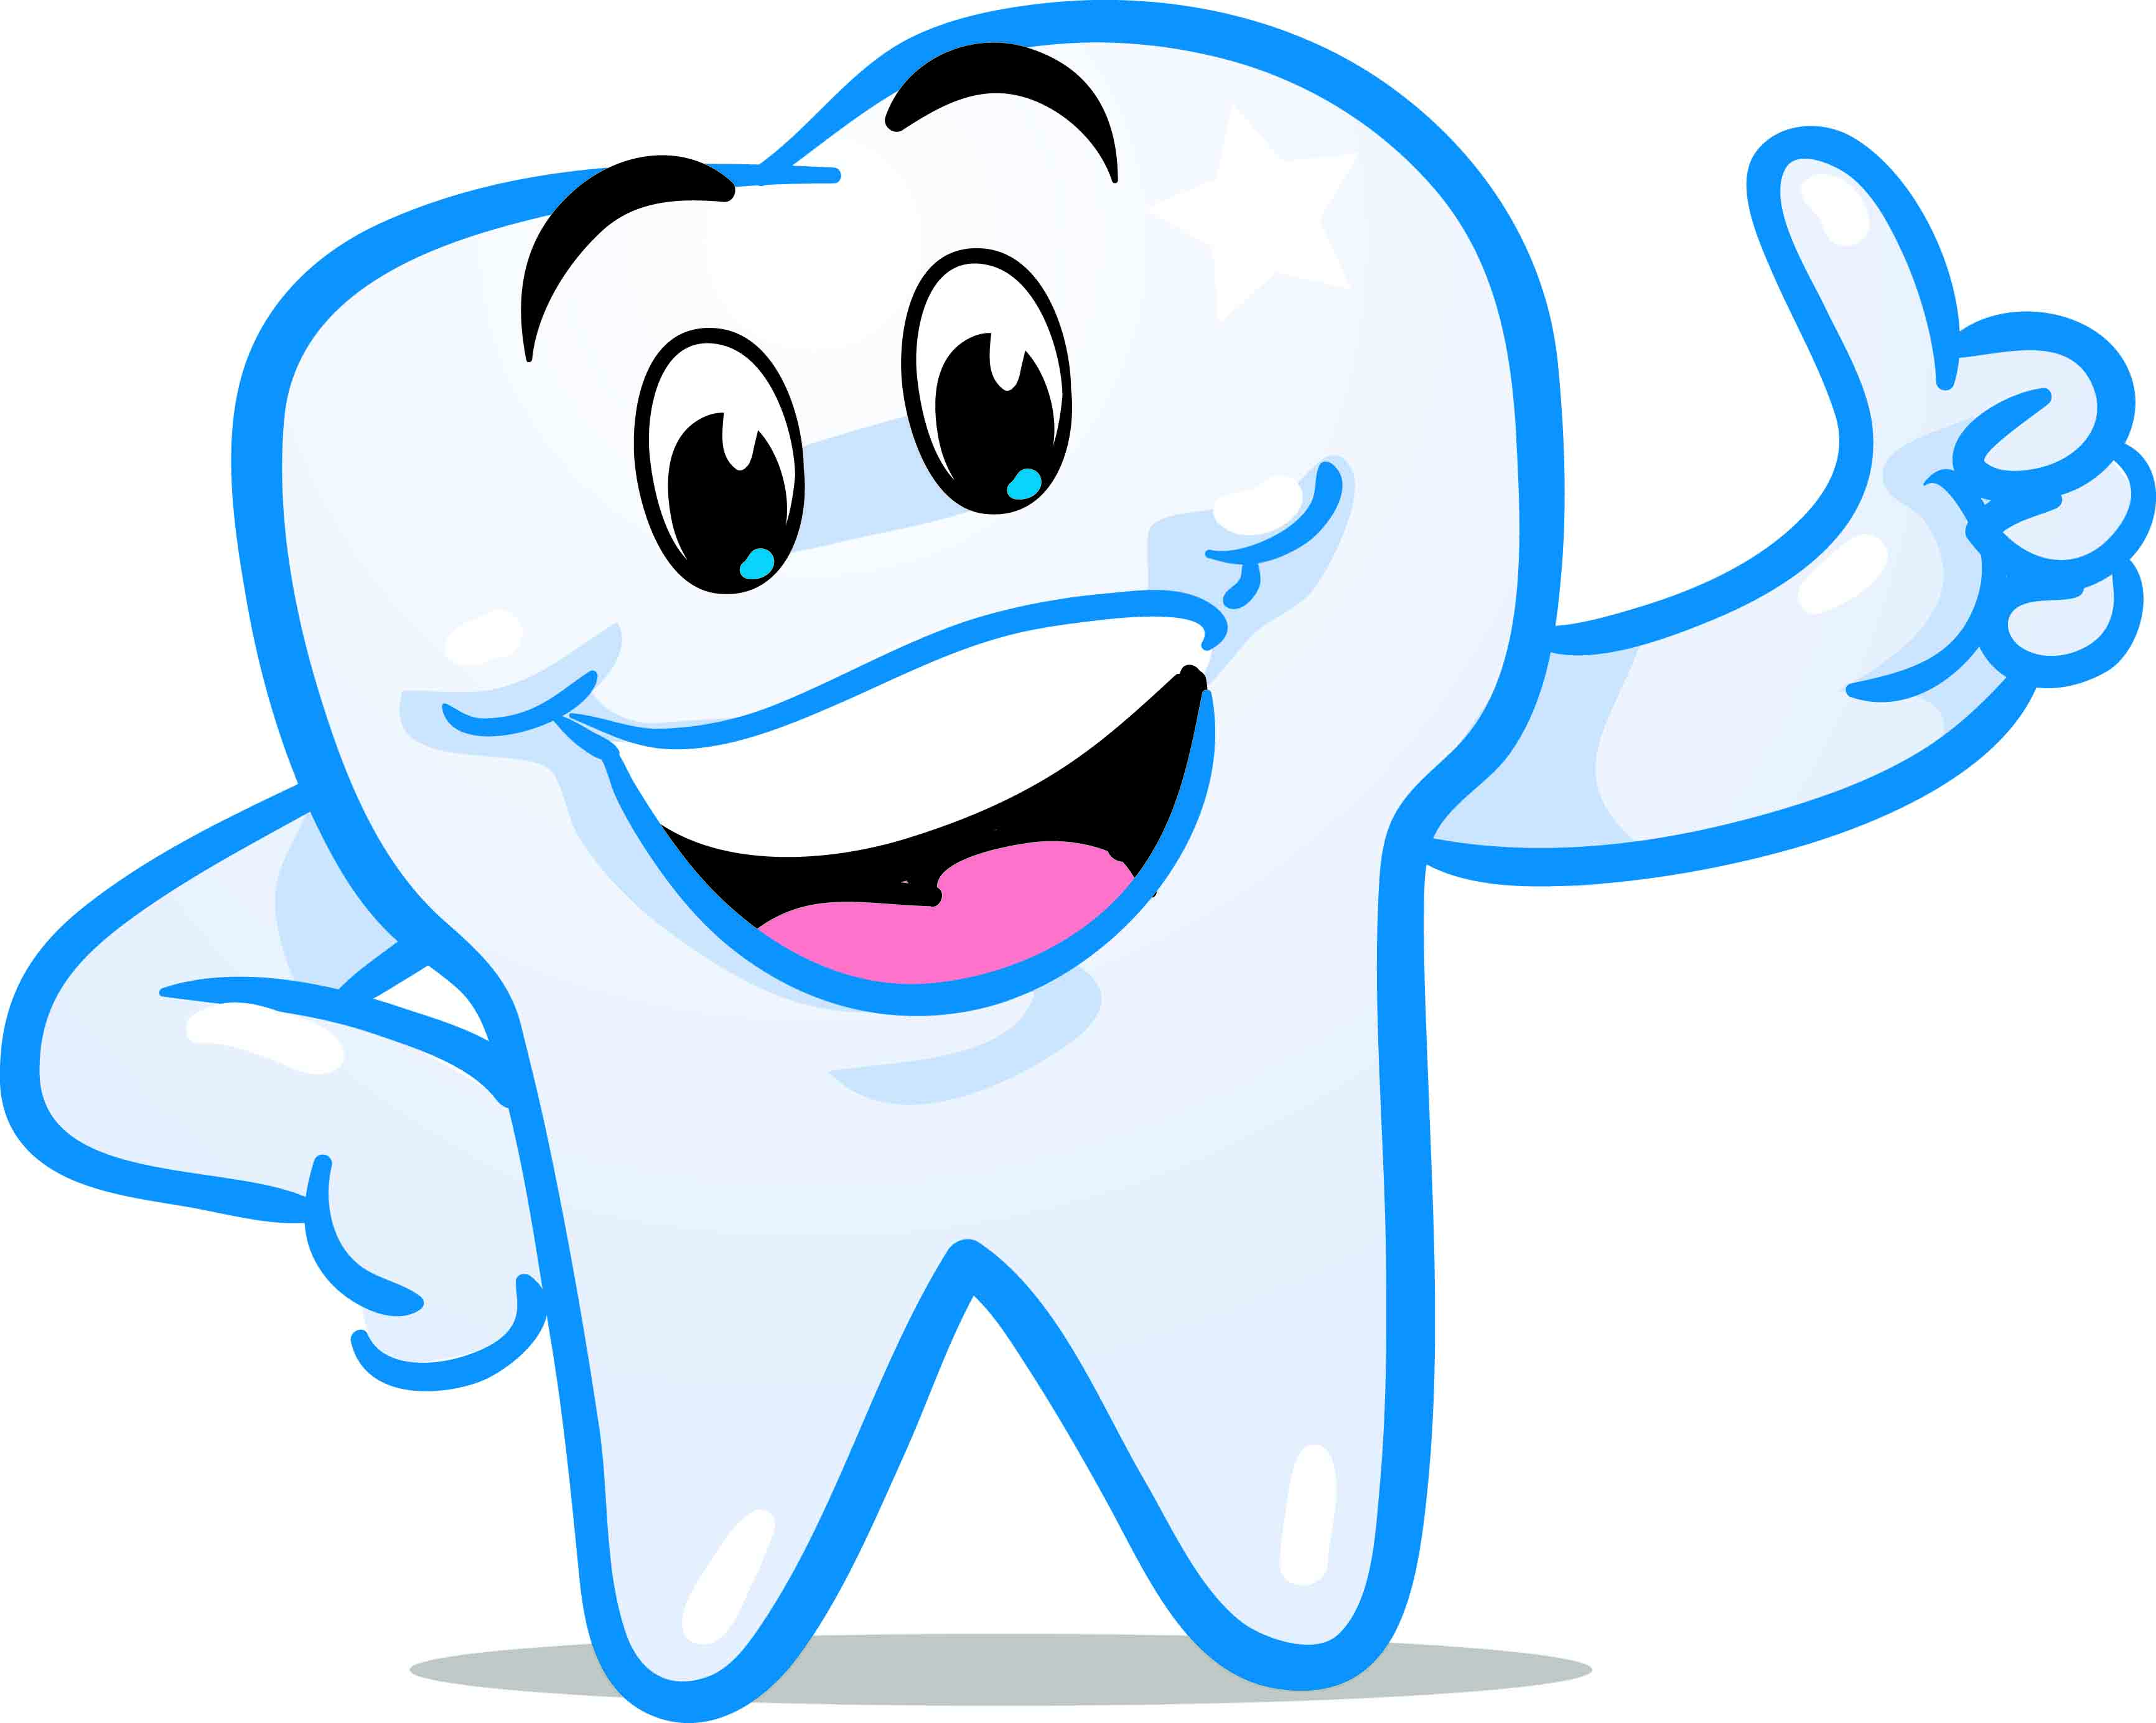 Free Office Smile Cliparts, Download Free Clip Art, Free.